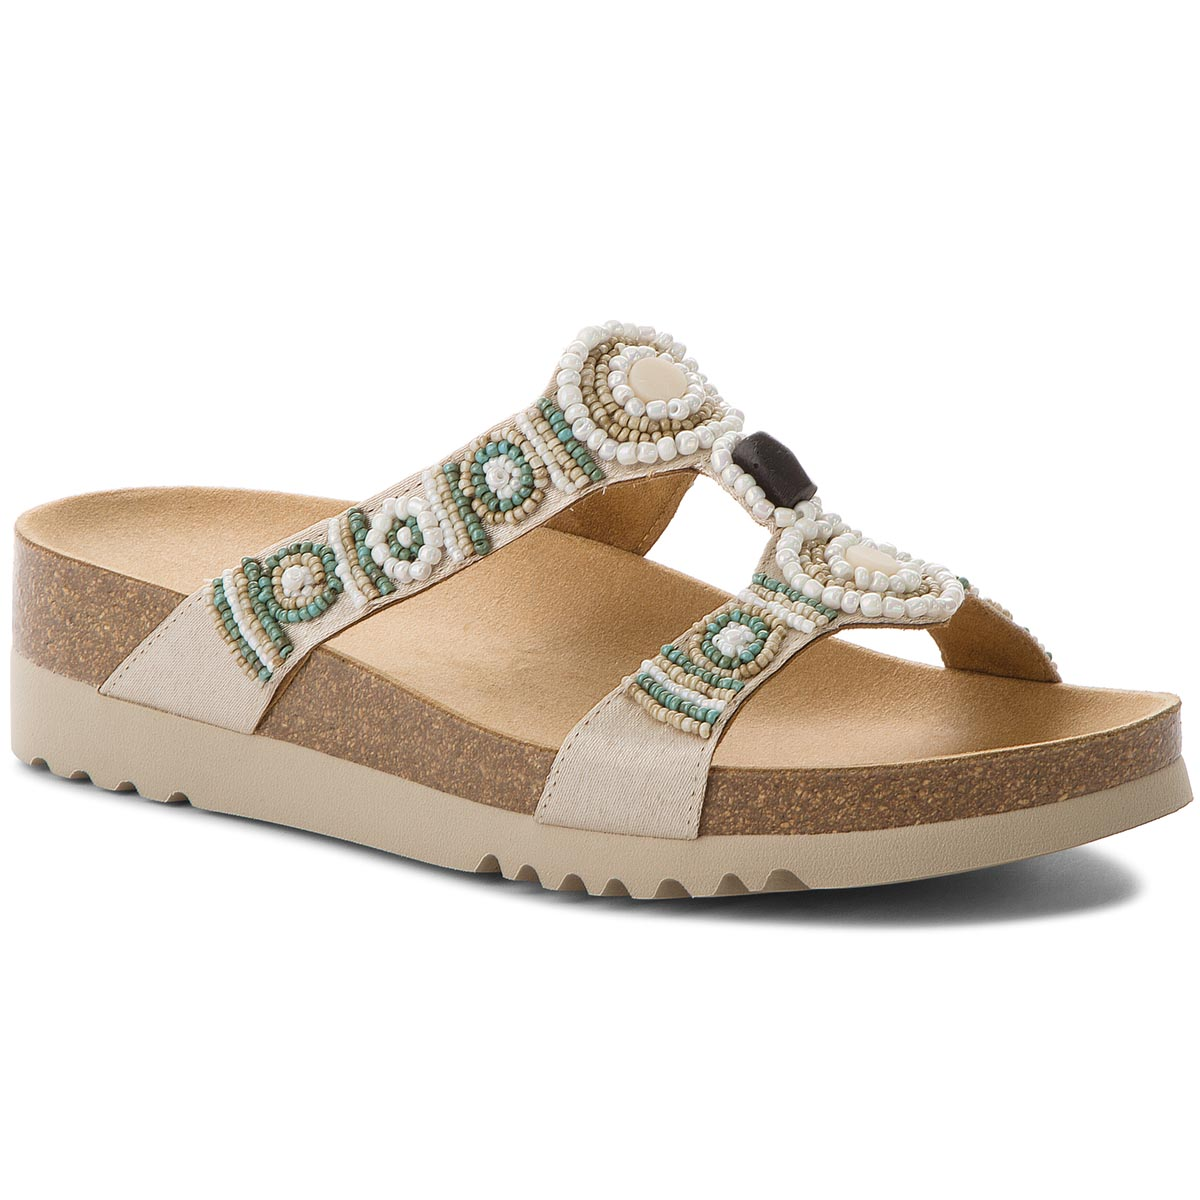 Klapki SCHOLL - New Bogota Wedge F26607 1015 380 Cream